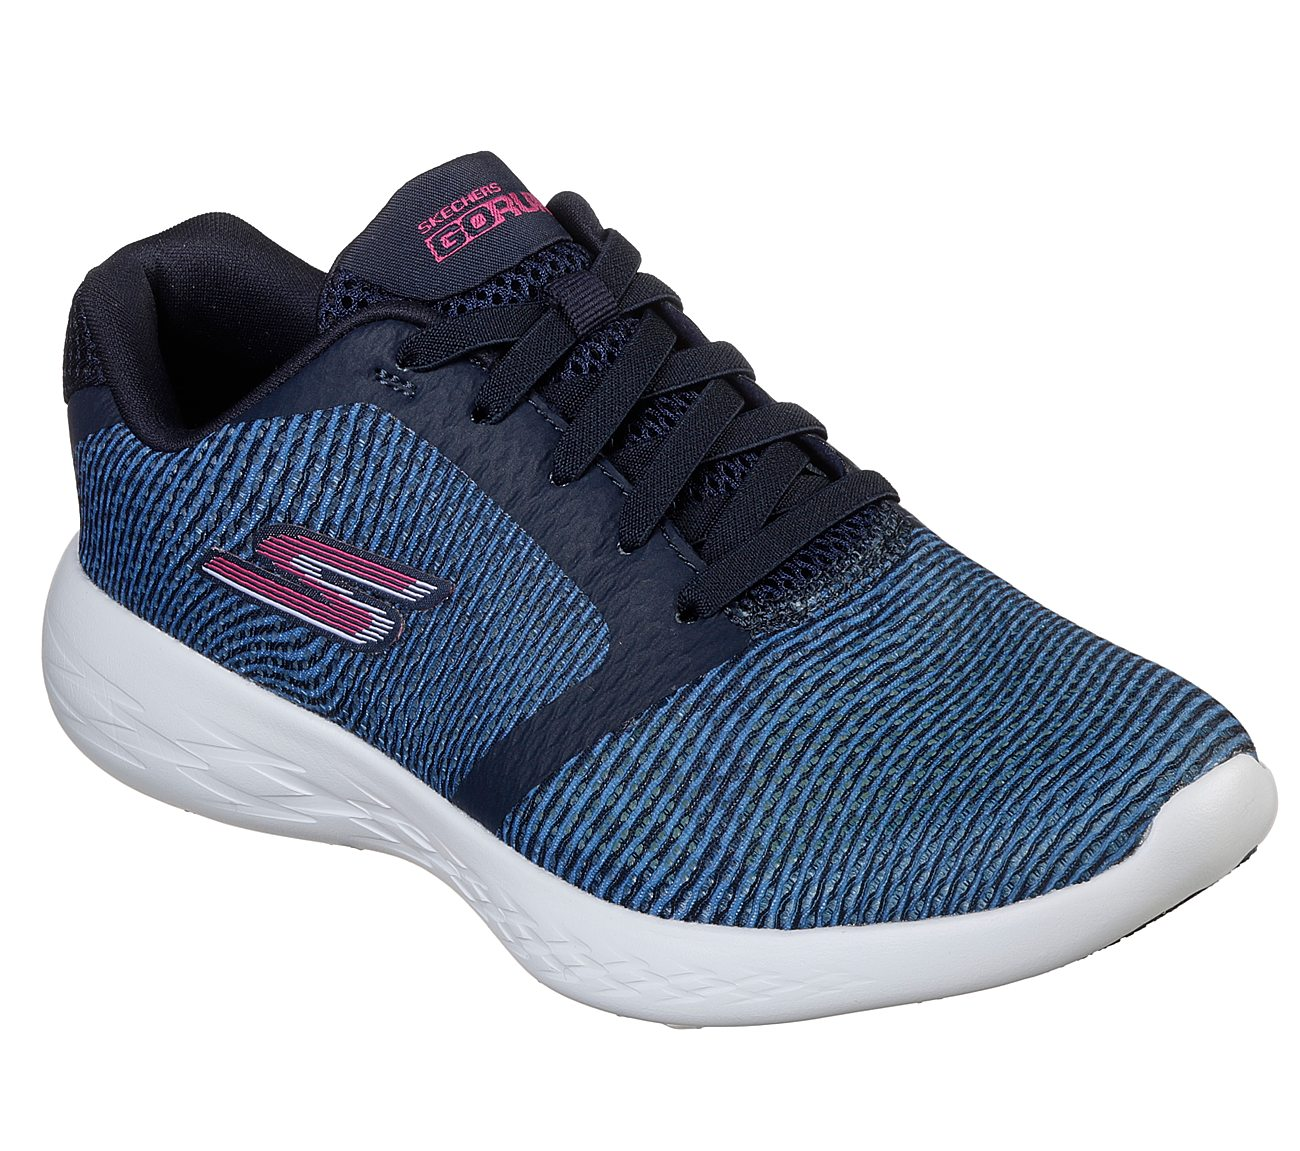 Women's Skechers GOrun 600 - Control clearance many kinds of best sale cheap online sast cheap price free shipping footlocker finishline outlet how much QCVEU3Mm